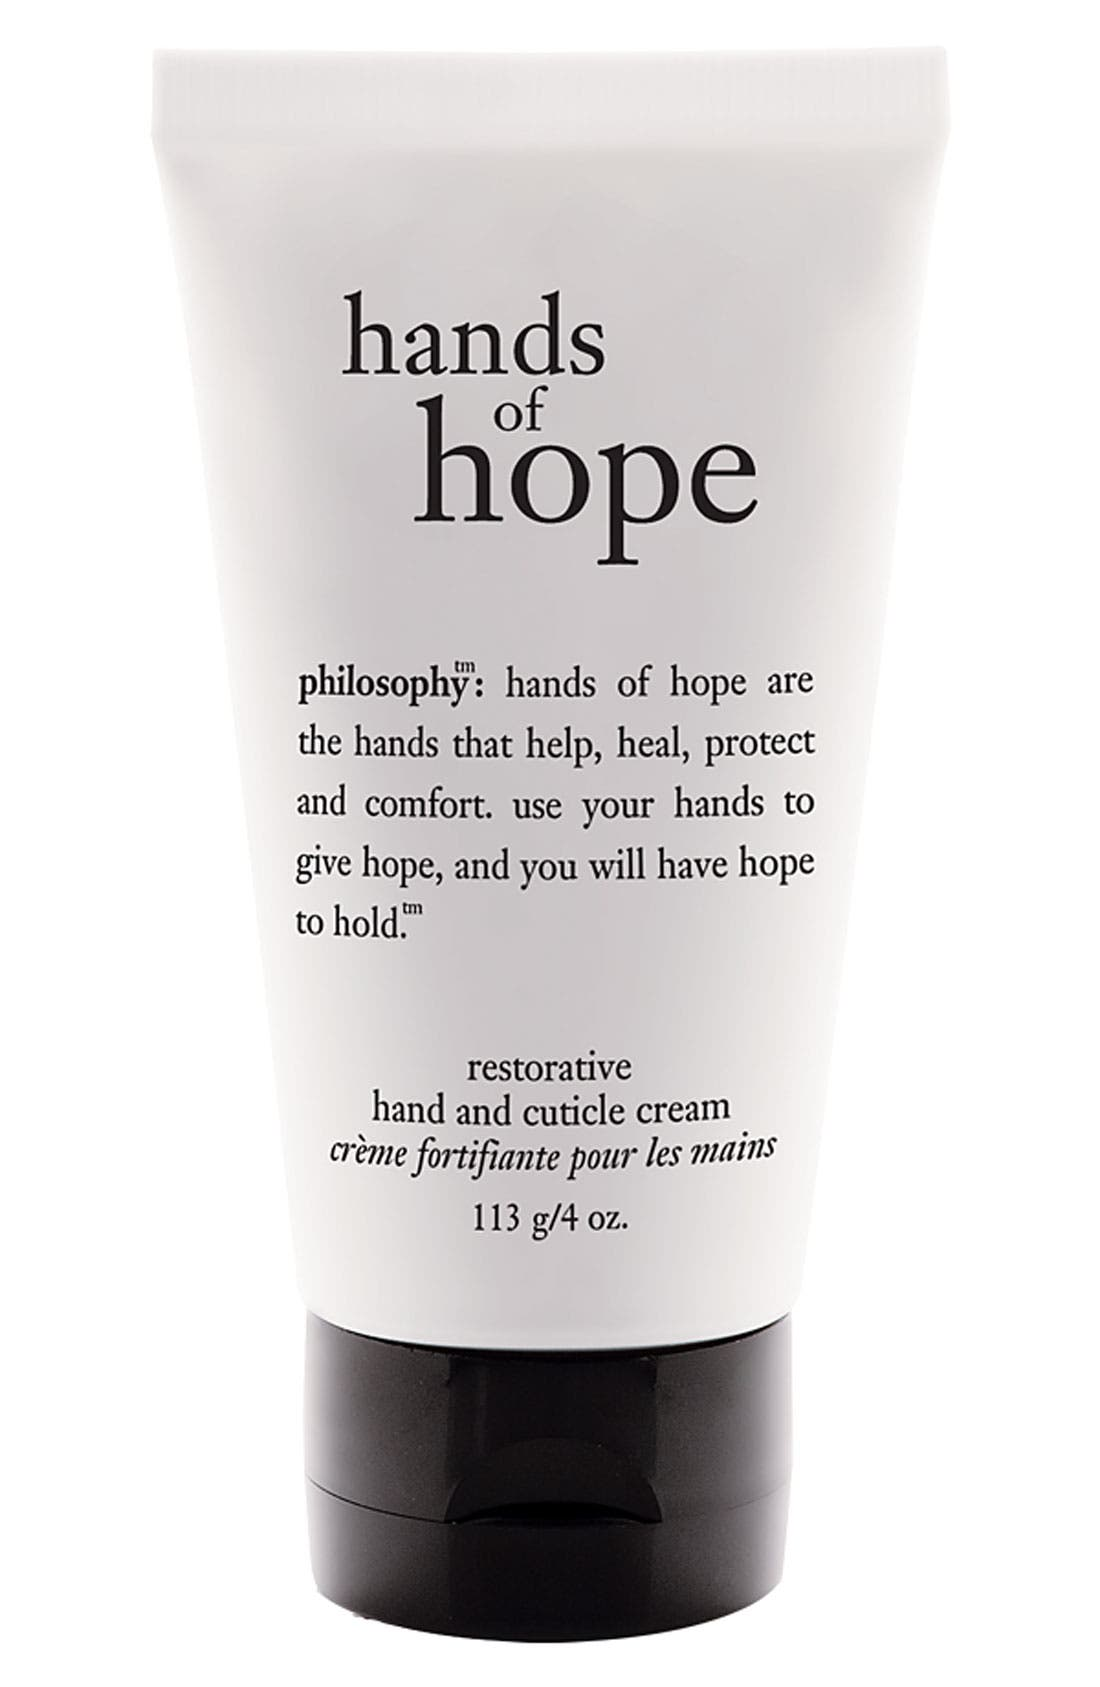 philosophy 'hands of hope' hand & cuticle cream